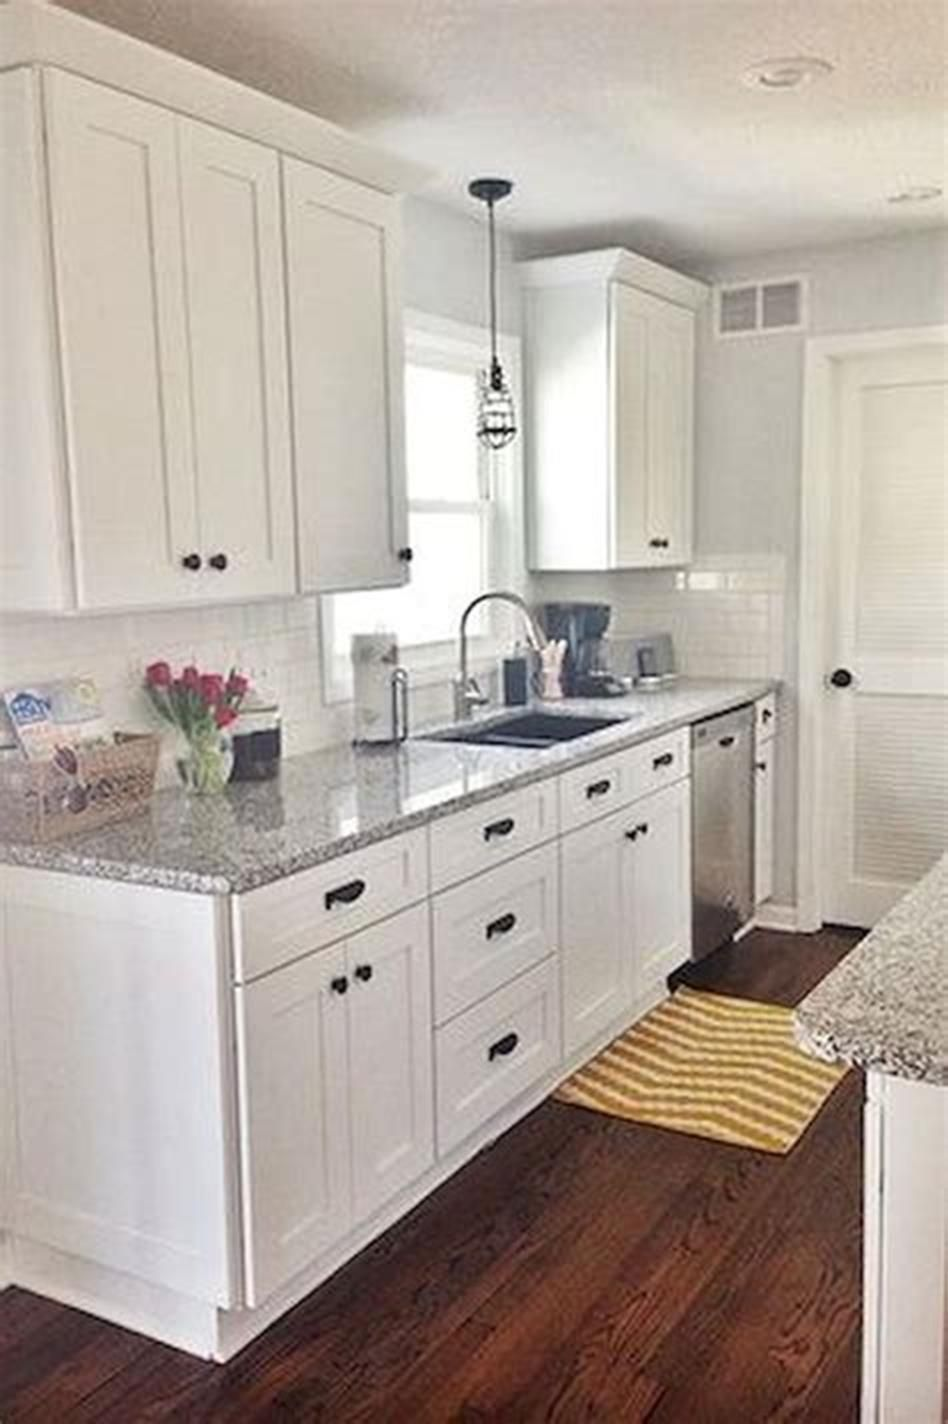 42 Amazing Ideas Kitchen Remodels With White Cabinets For 2019 4 Homenthusiastic In 2020 Kitchen Cabinets Decor Kitchen Remodel Small Kitchen Design